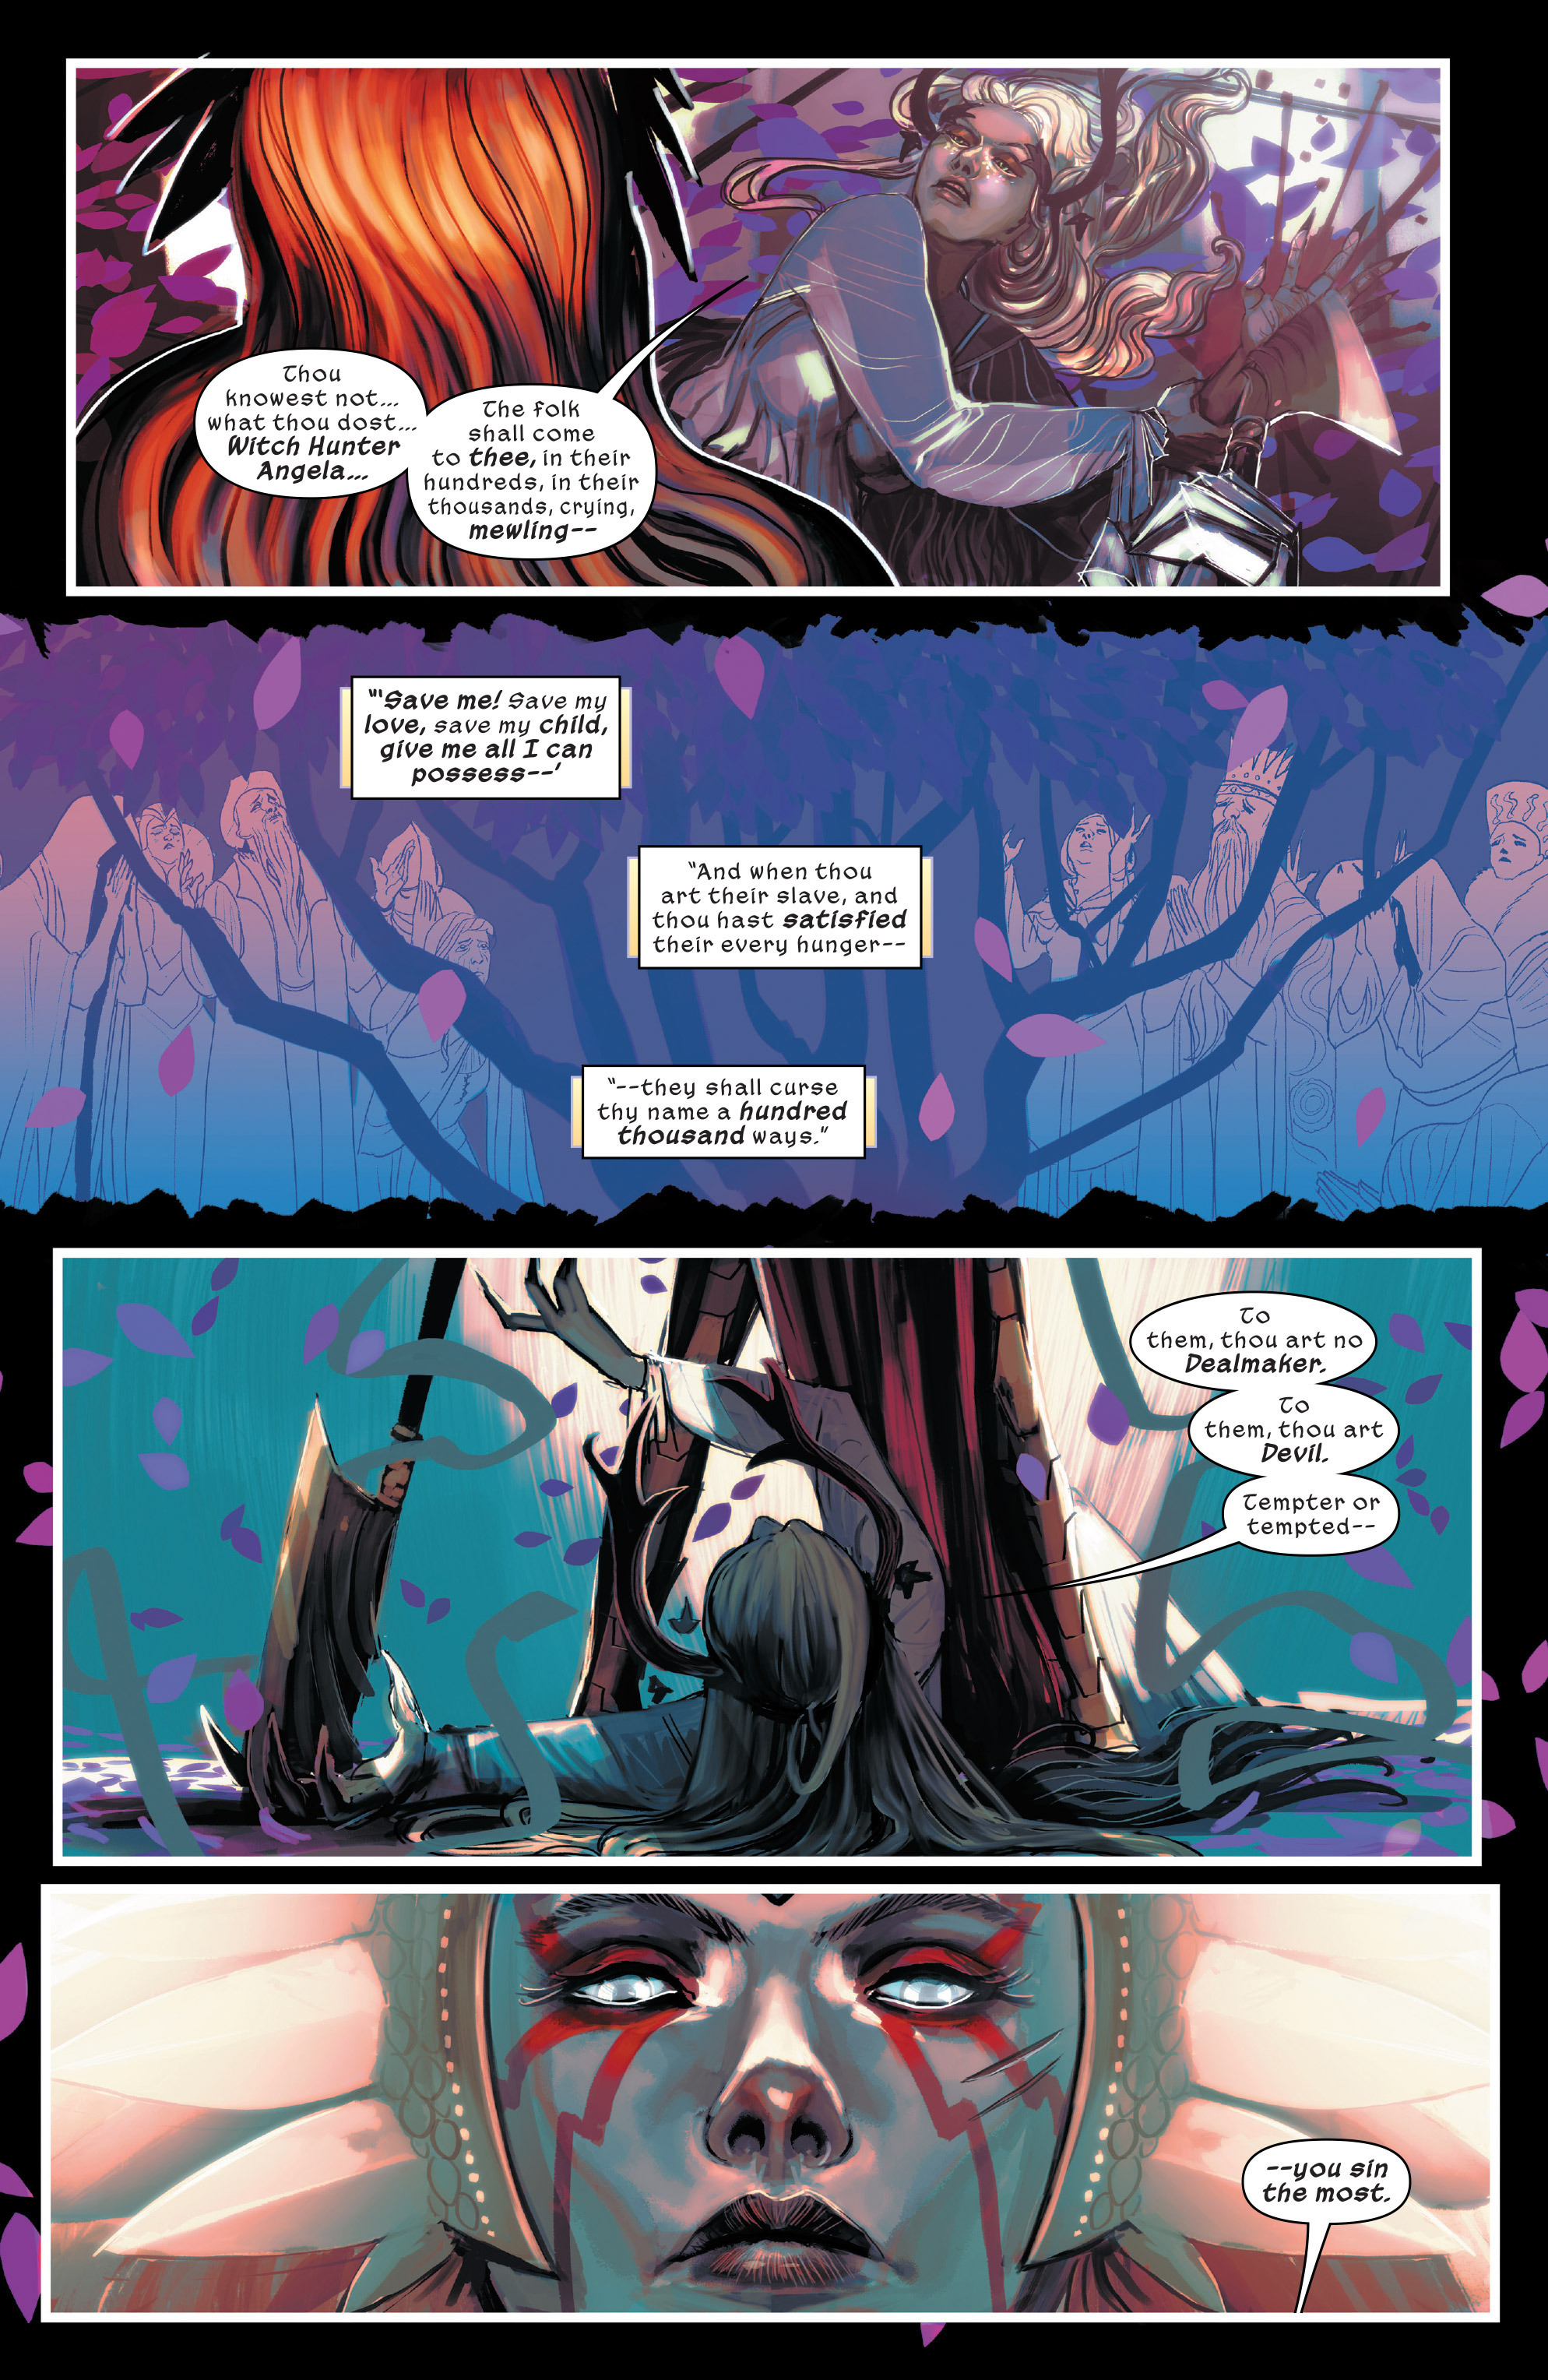 Read online 1602 Witch Hunter Angela comic -  Issue #4 - 10